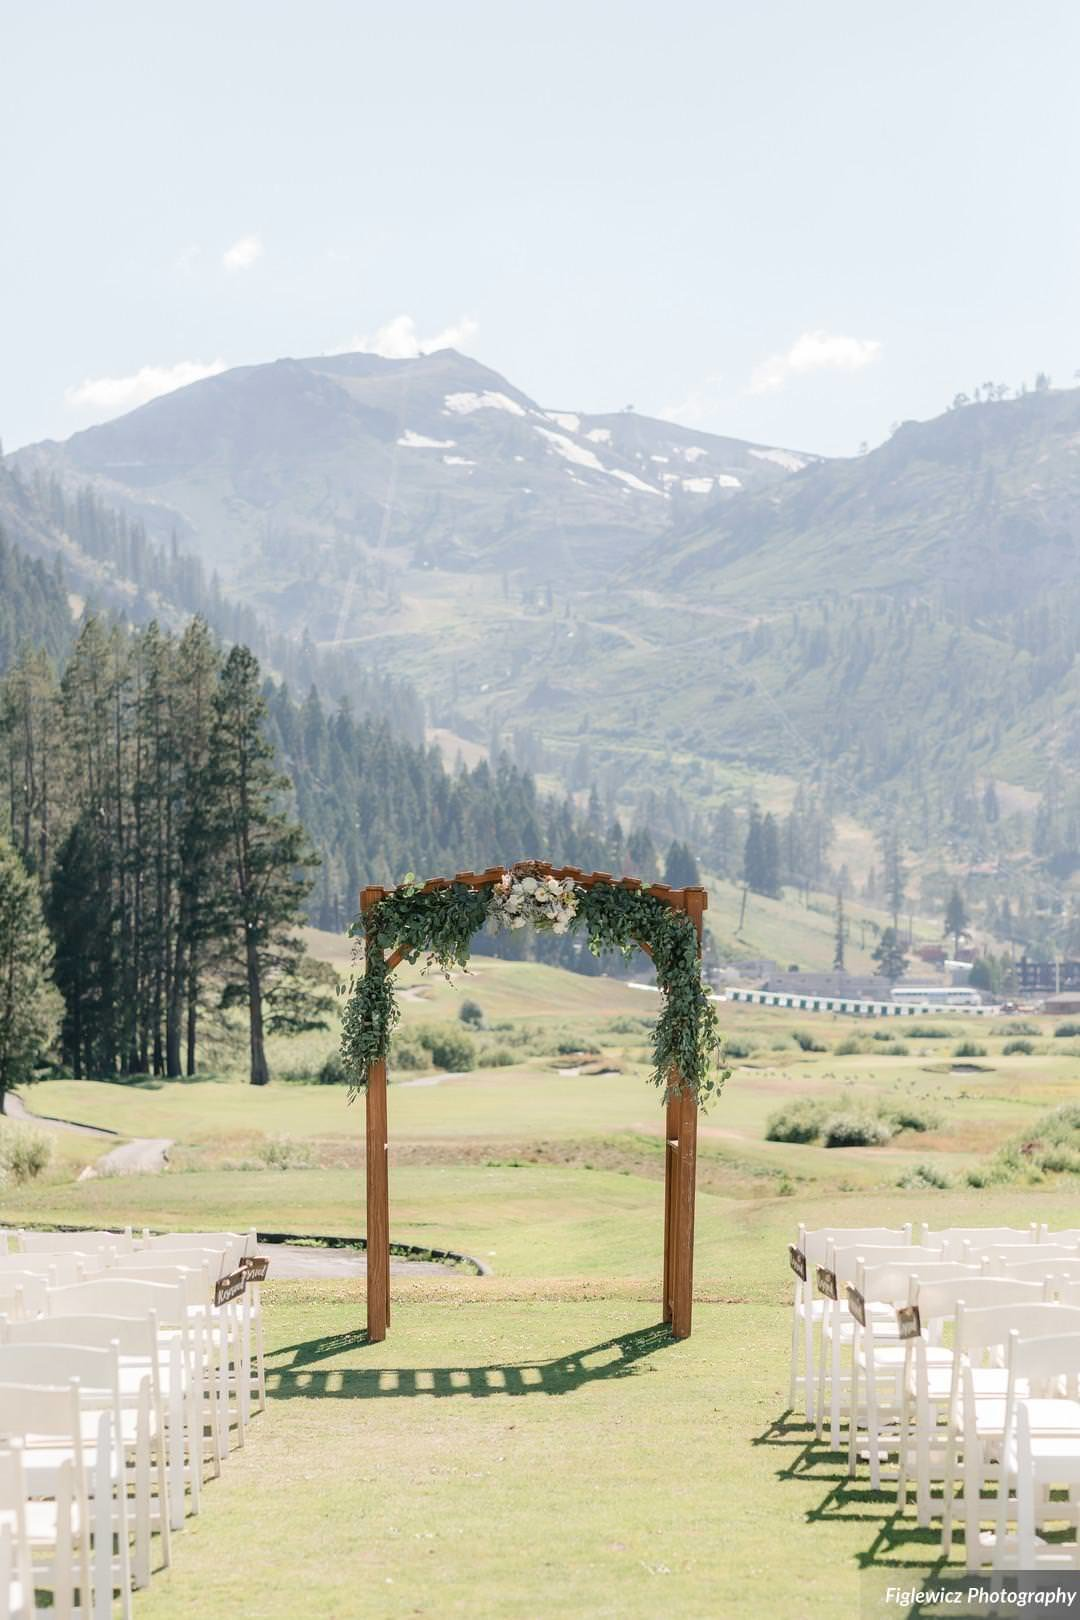 Garden_Tinsley_FiglewiczPhotography_LakeTahoeWeddingSquawValleyCreekTaylorBrendan00077_big